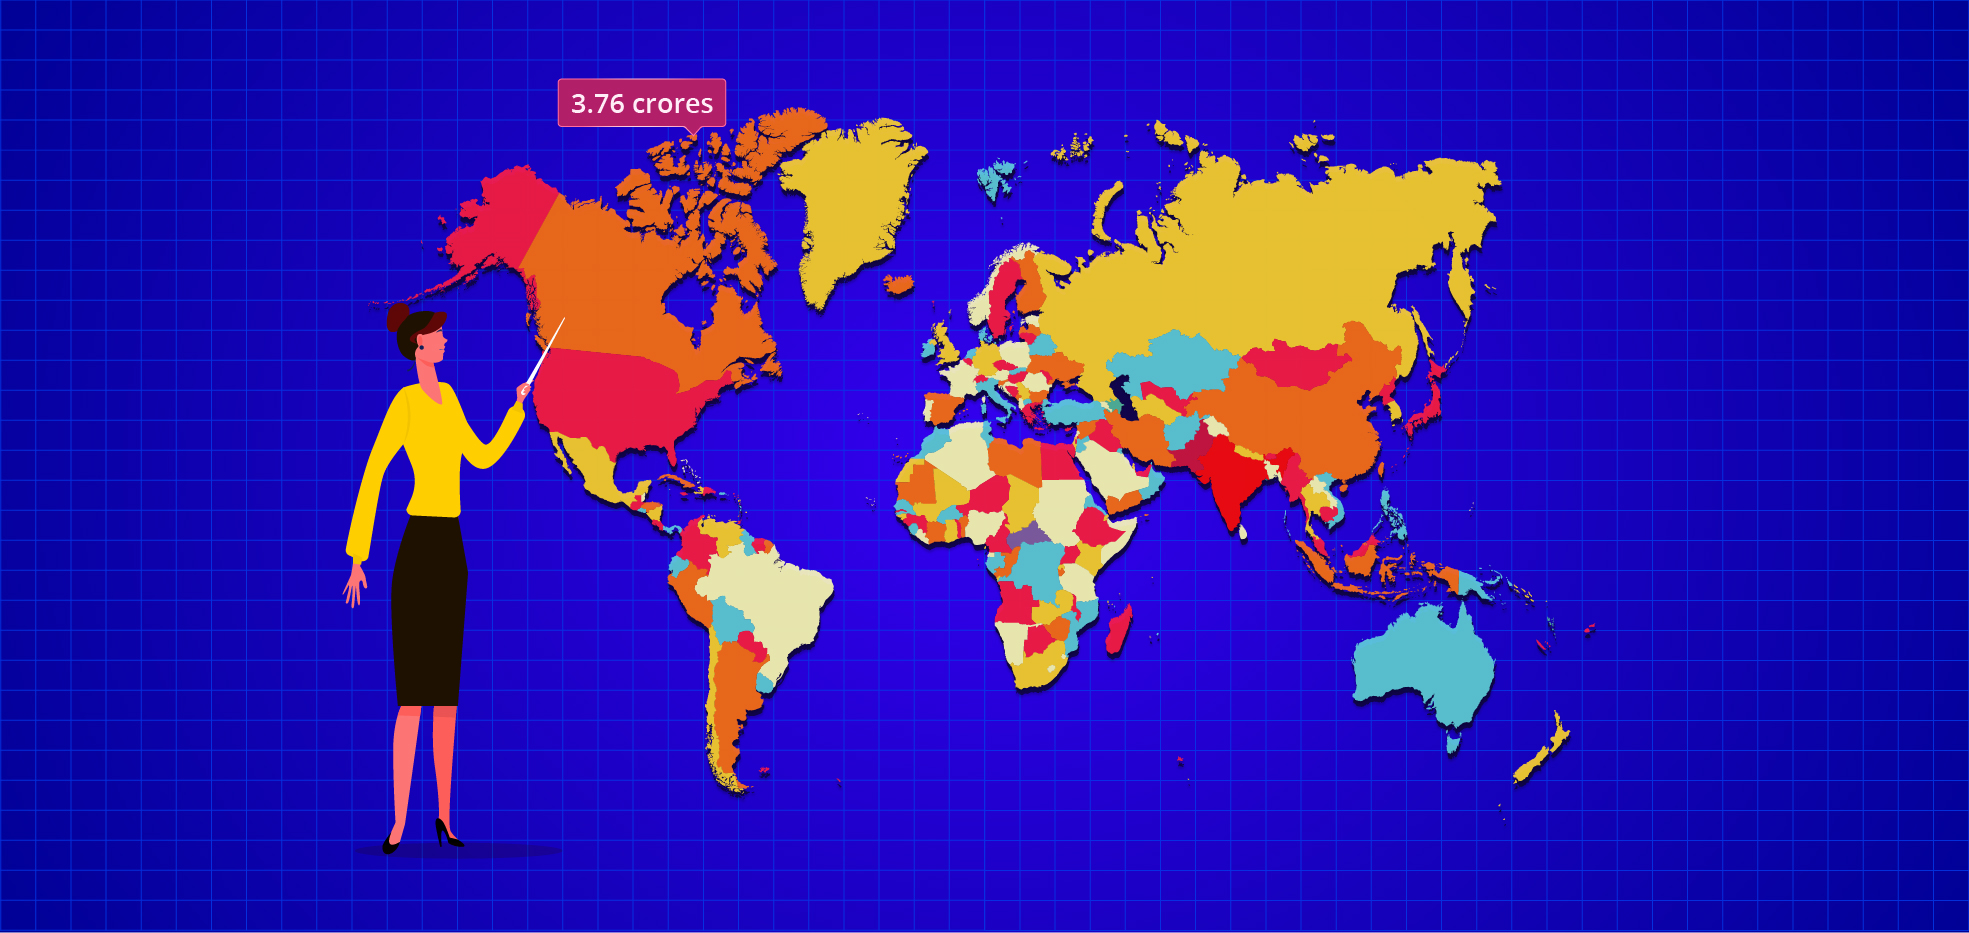 Create a World Population Report Using a Map